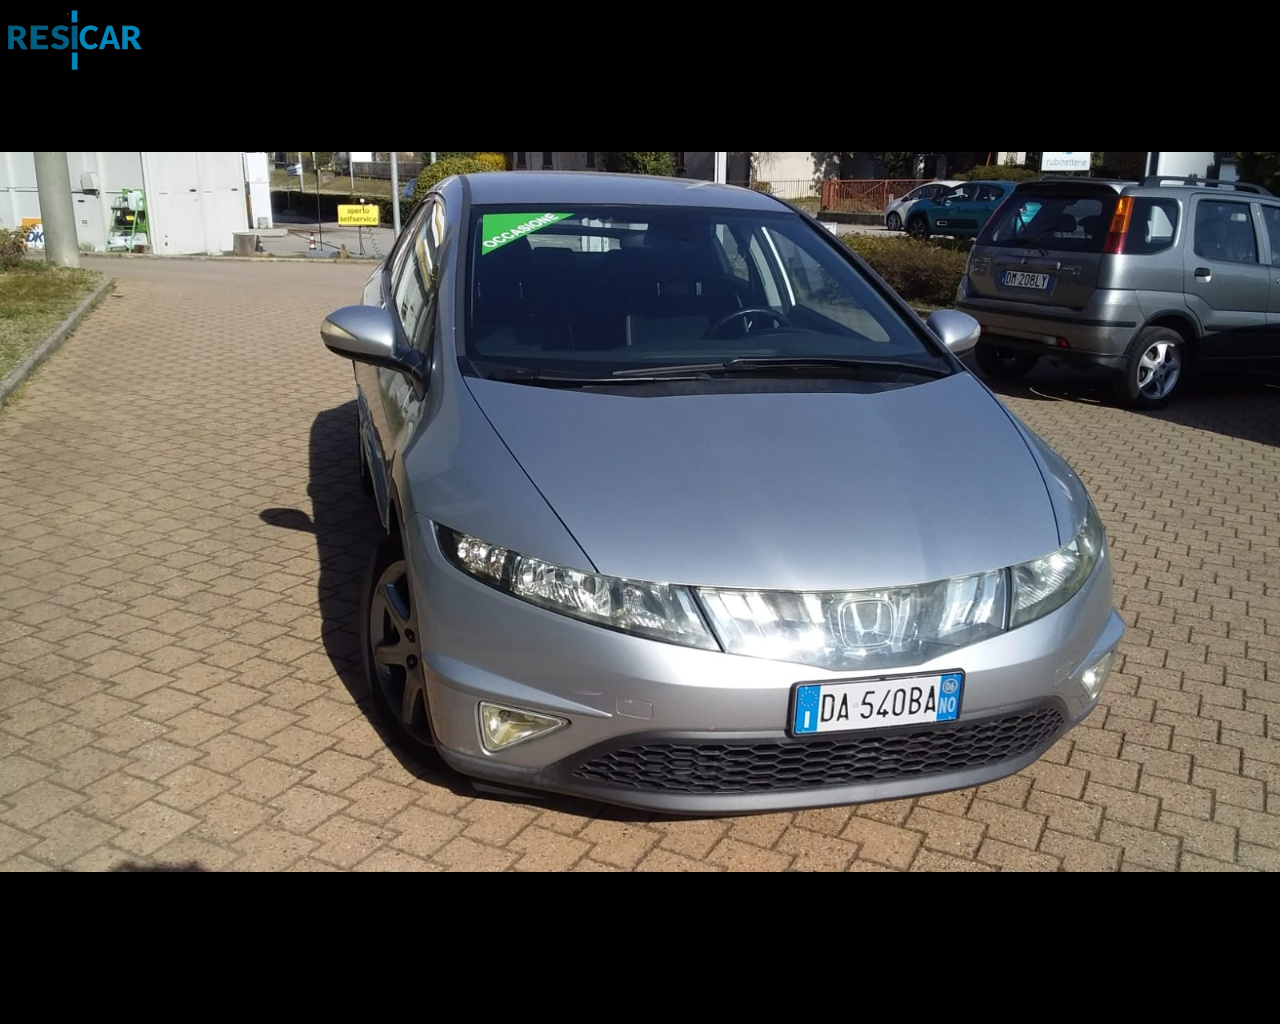 Honda - 1.8 i-vtec exclusive le (executive) - 1569228 - Resicar - 02